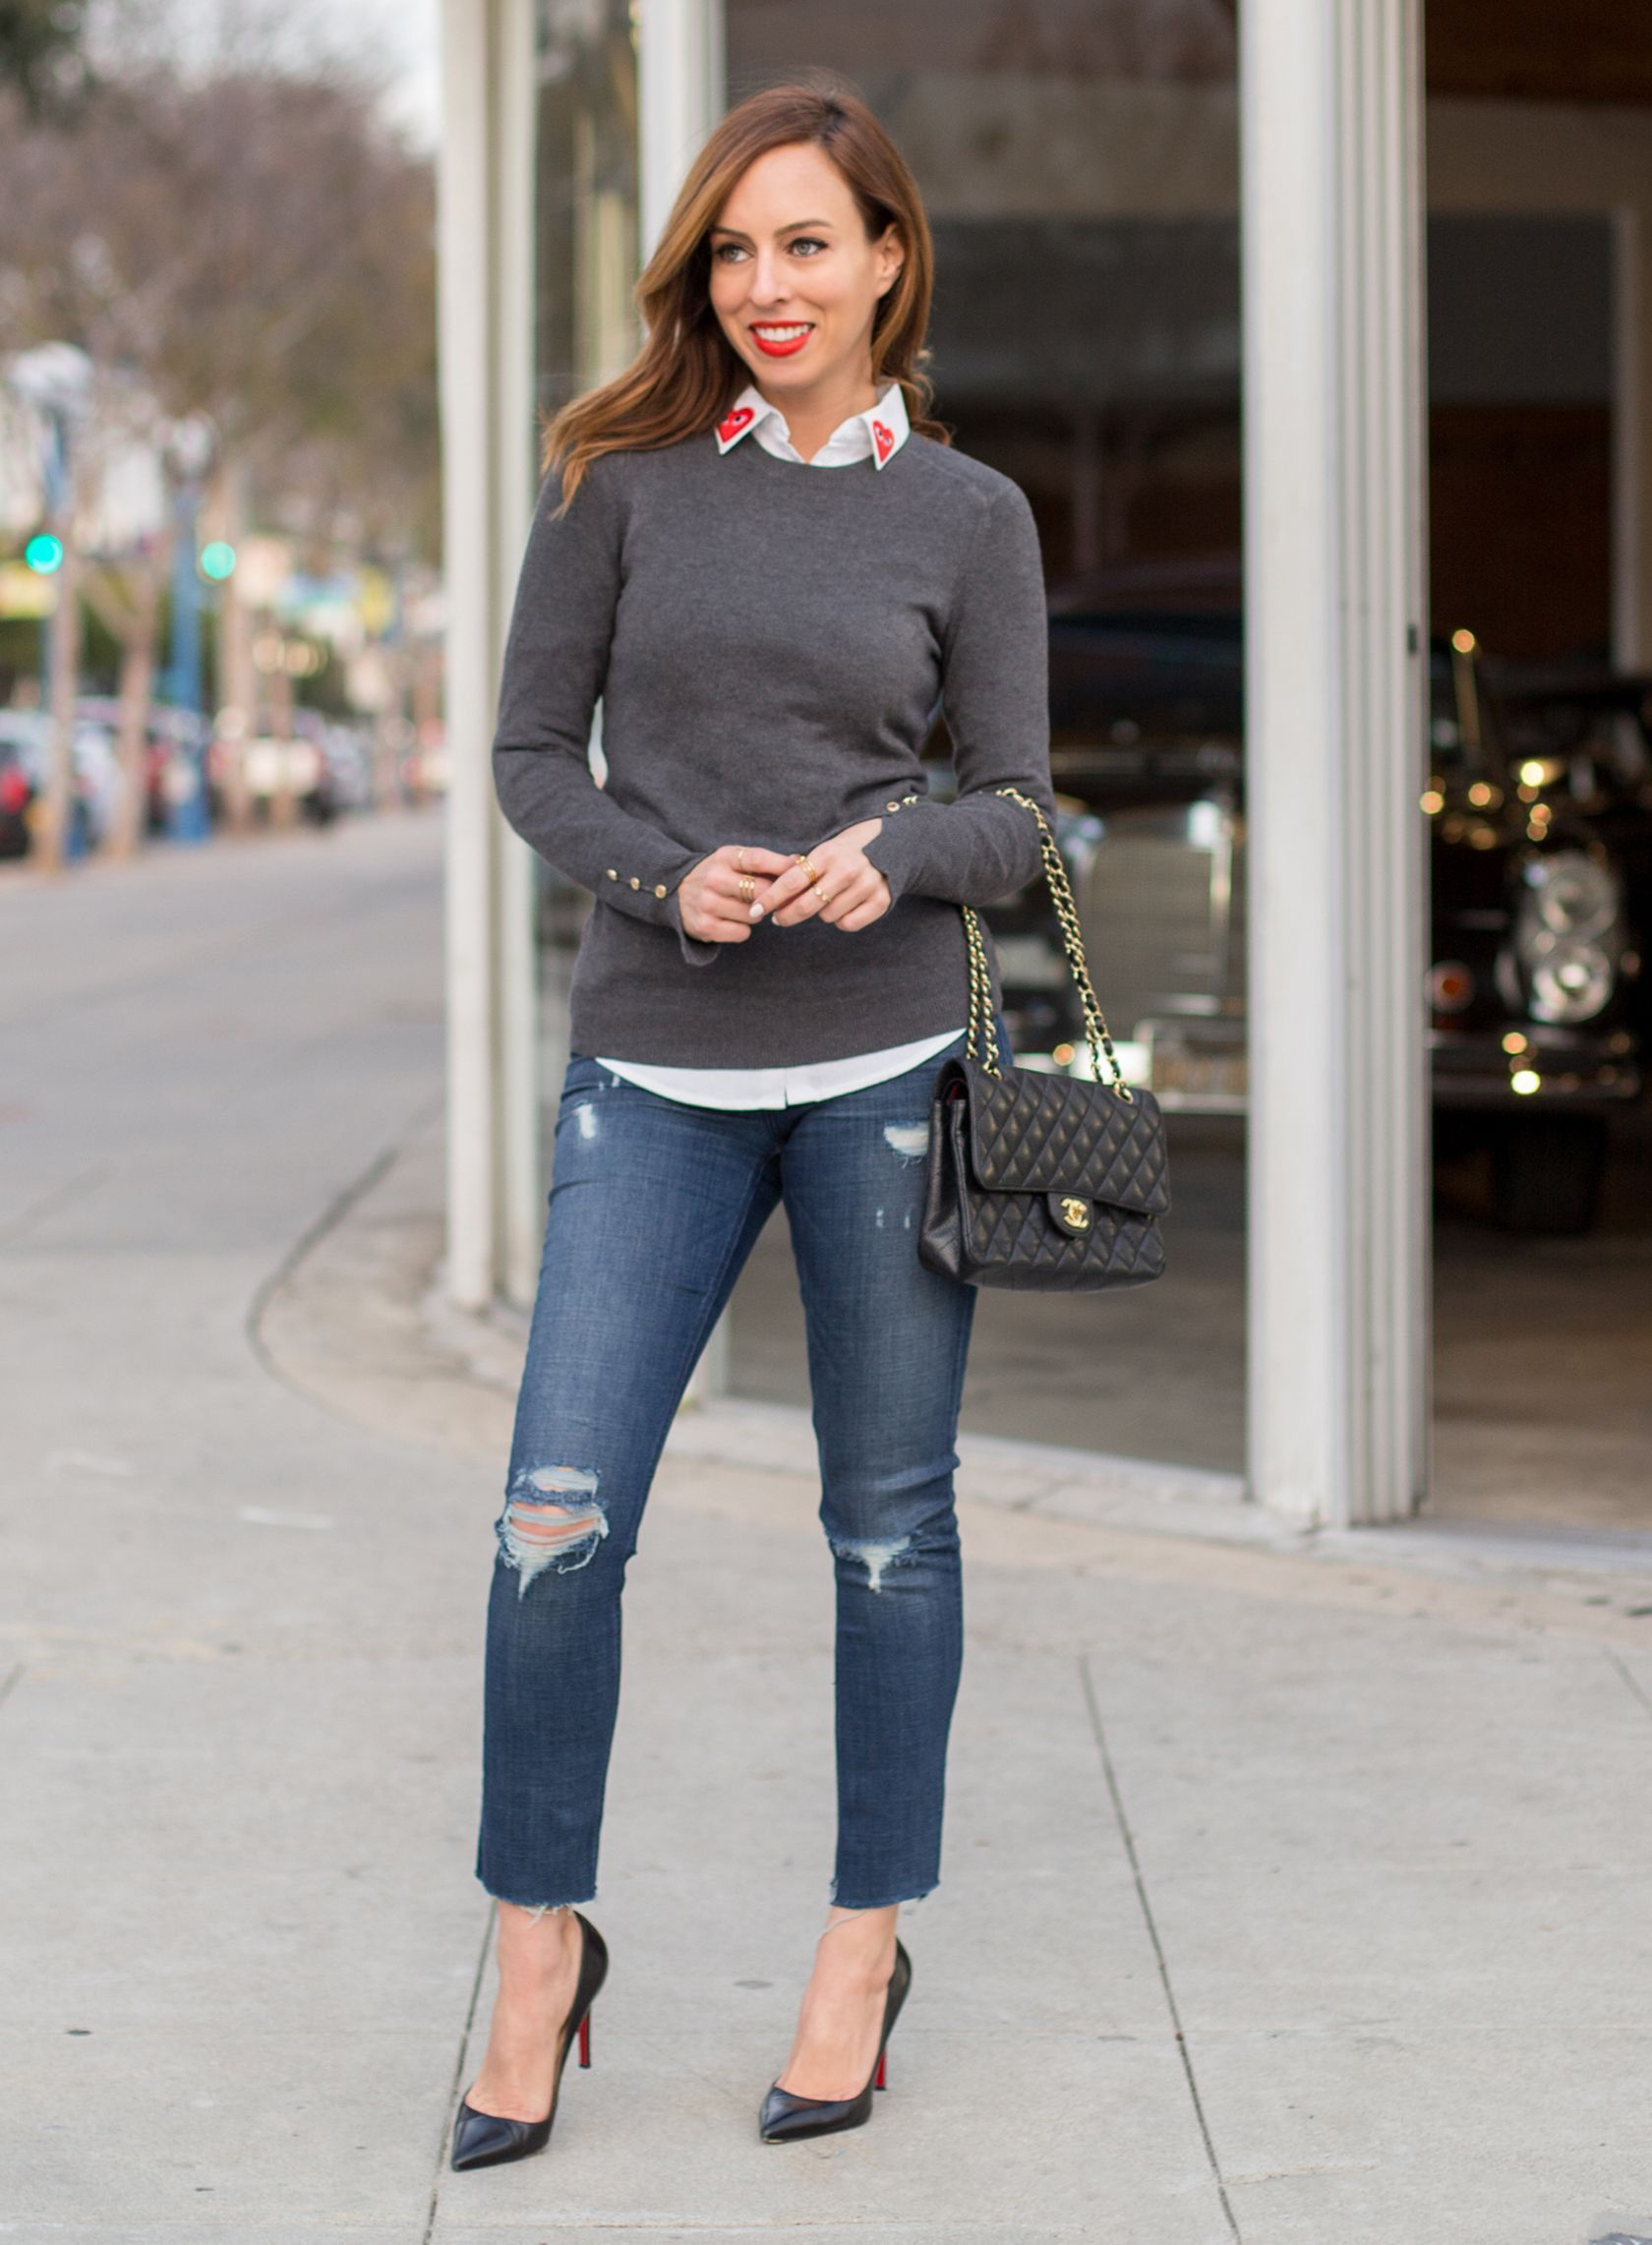 Sydne Style gives valentines day outfit ideas that aren t red in jeans and  a sweater  buttondownshirtoutfitideas 0ef0919121